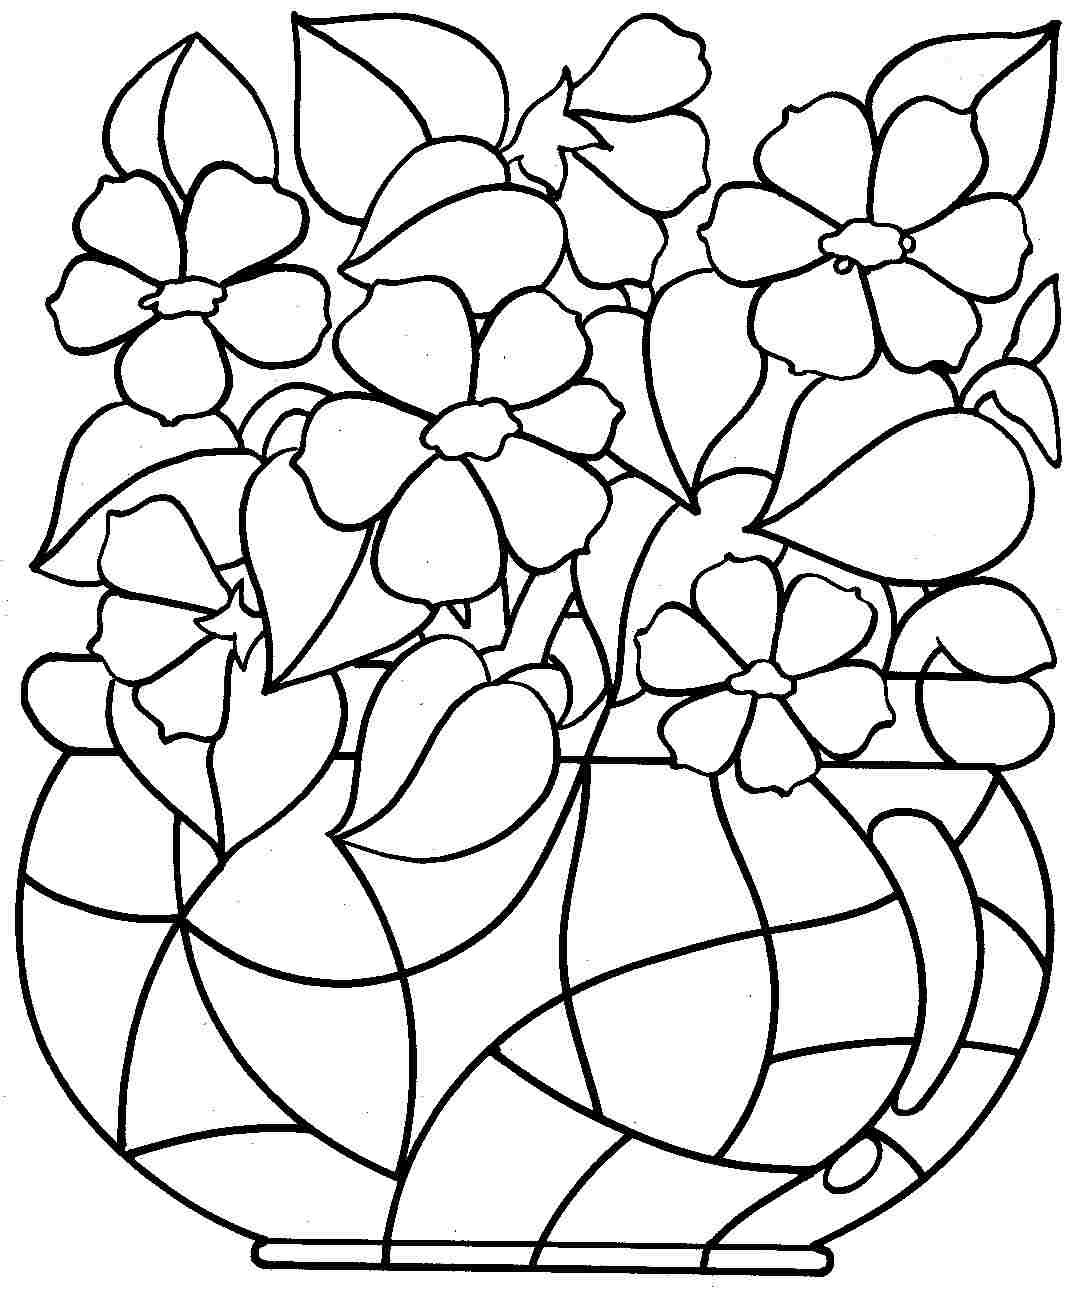 downloadable coloring pages - free printable coloring pages of flowers for kids